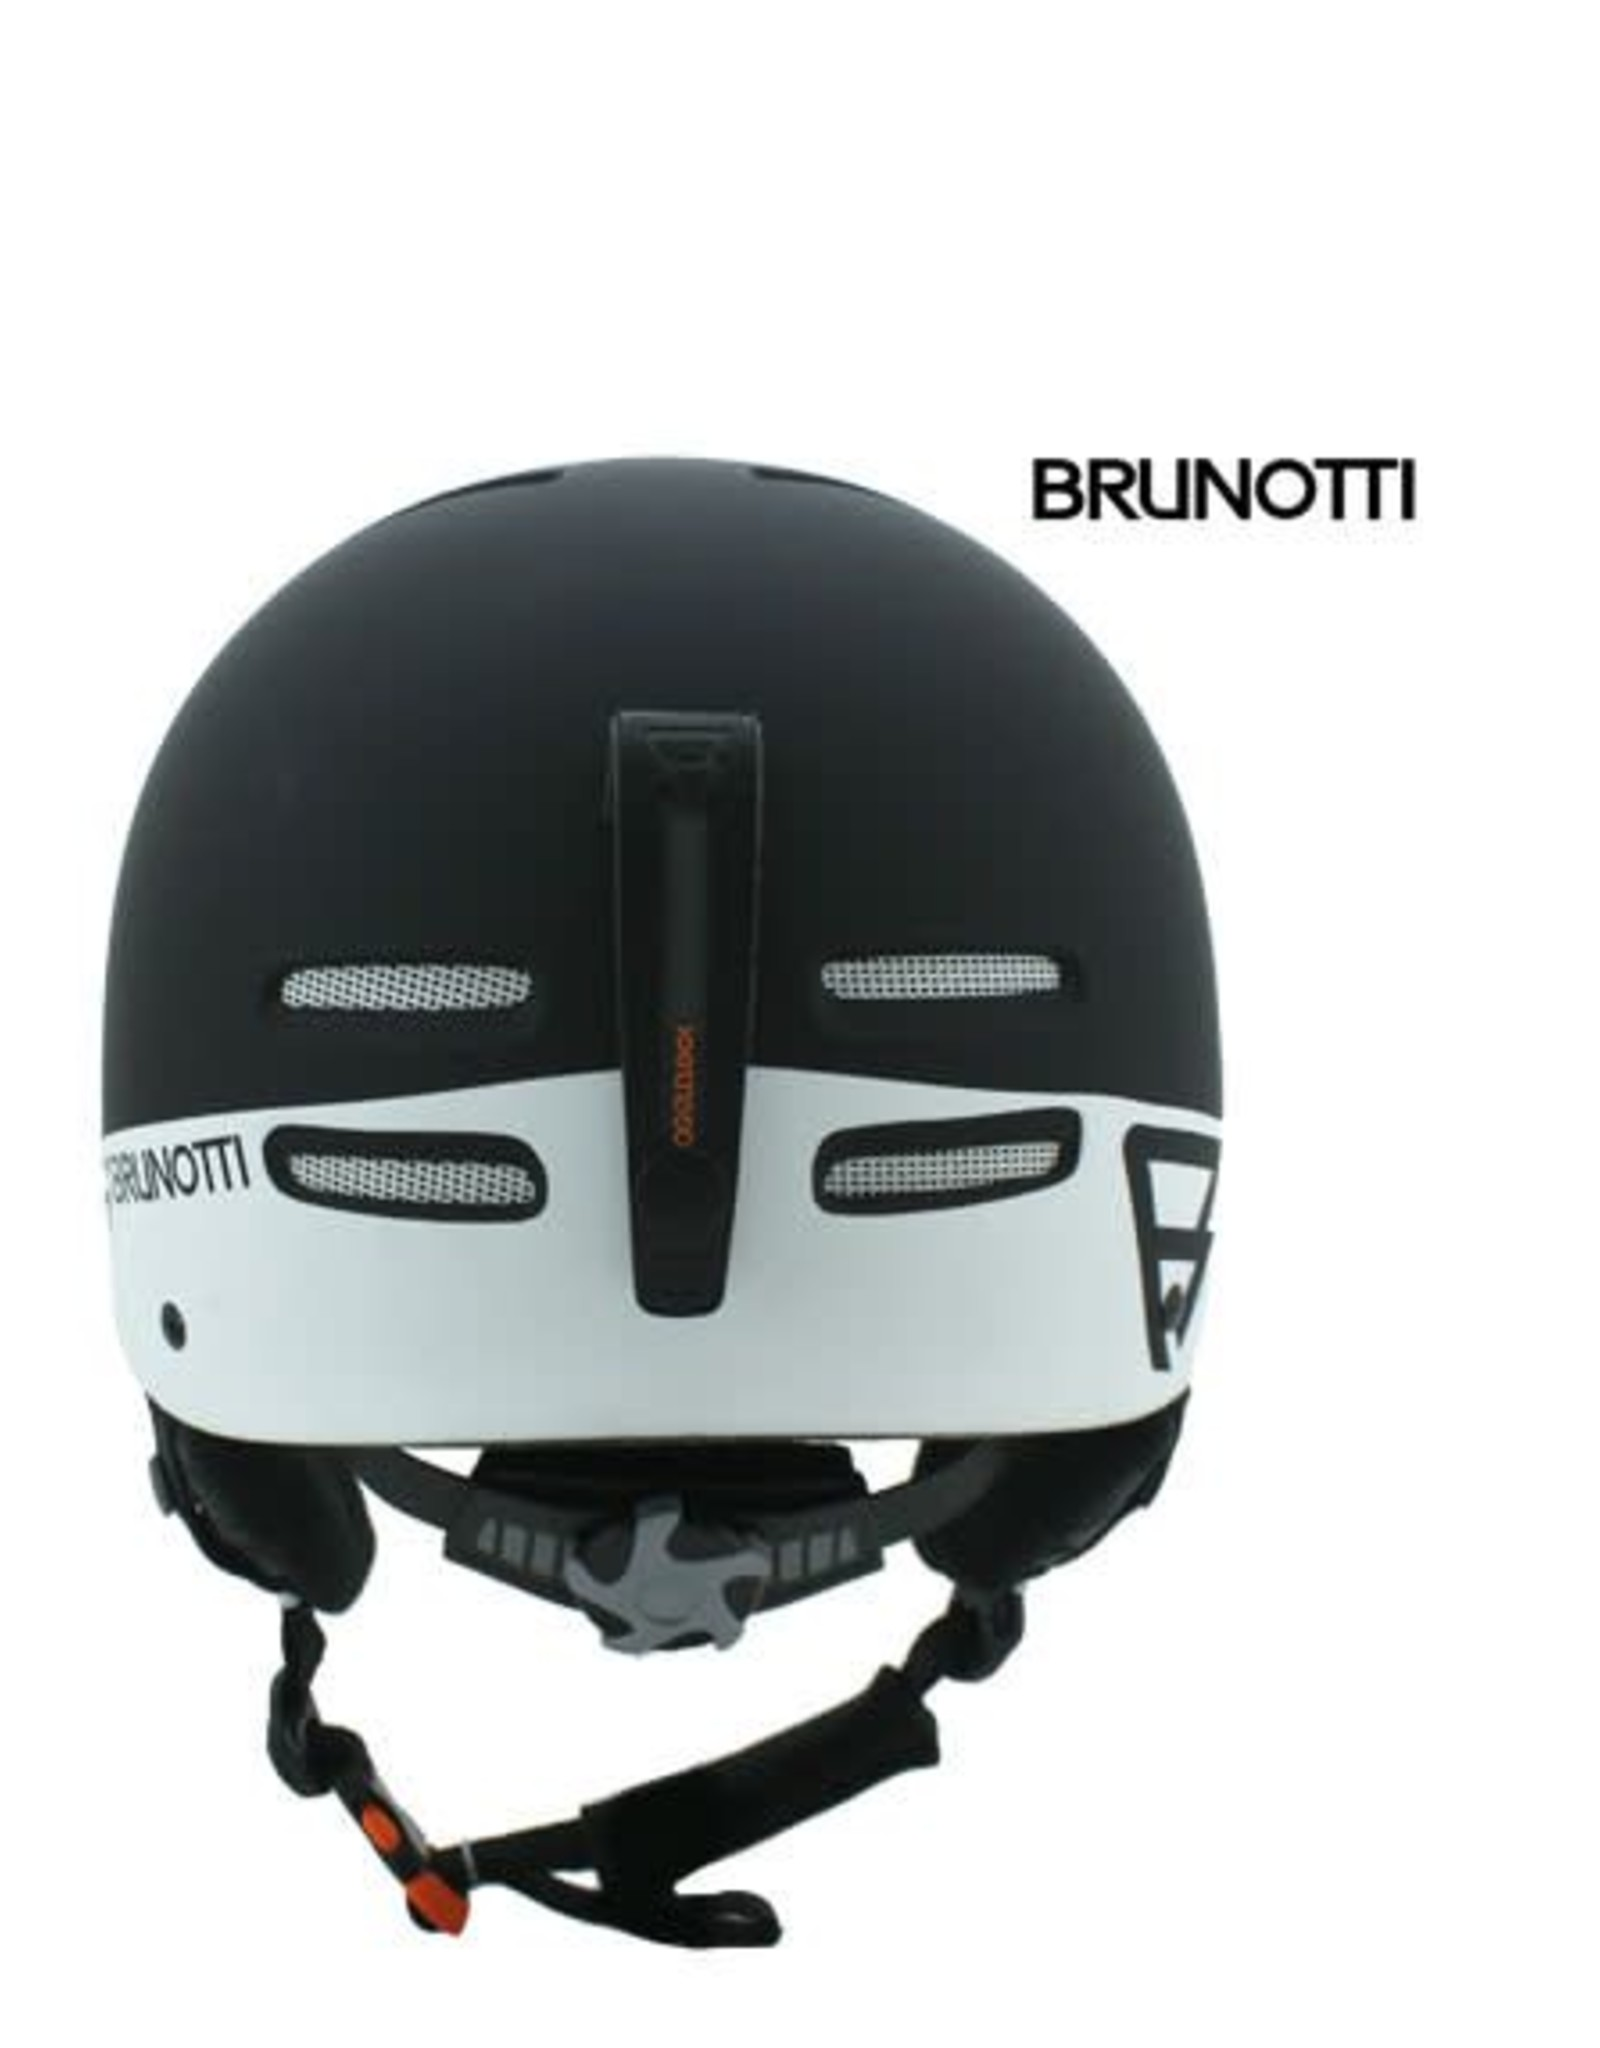 BRUNOTTI Skihelm Cool 4  Zwart/Wit